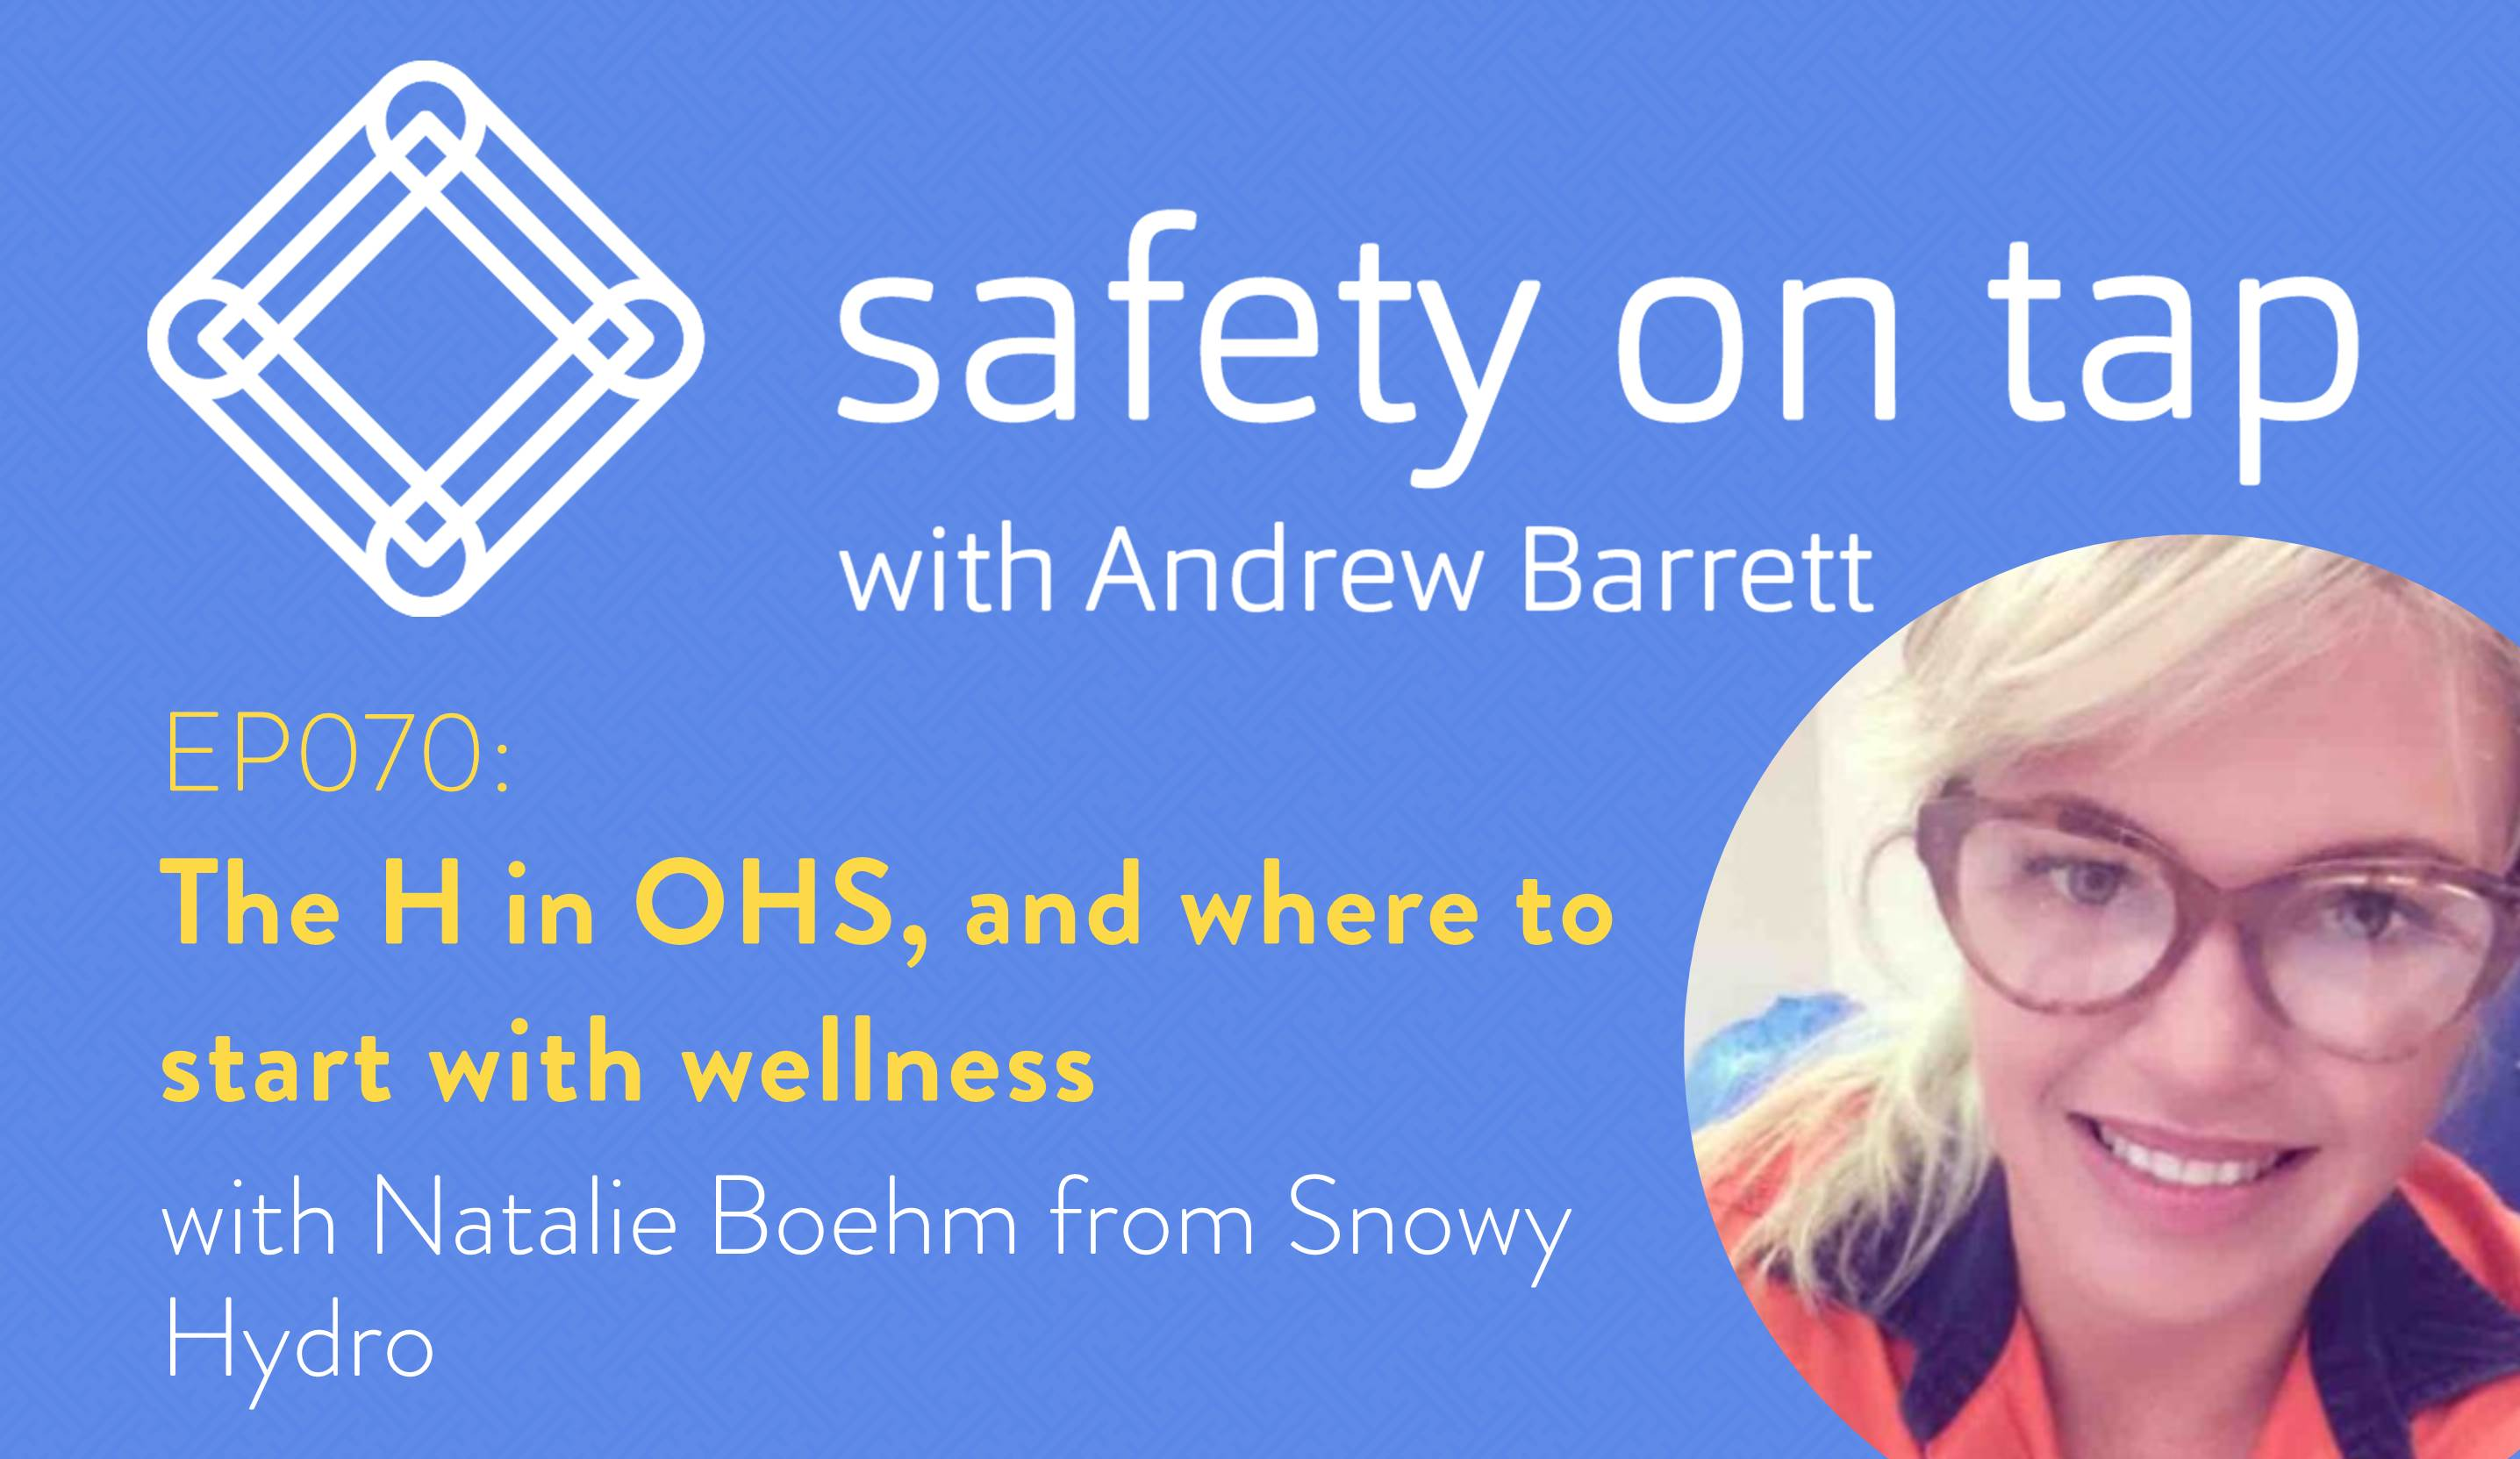 Ep070: Finding the H, and where to start with wellness, with Nat Boehm